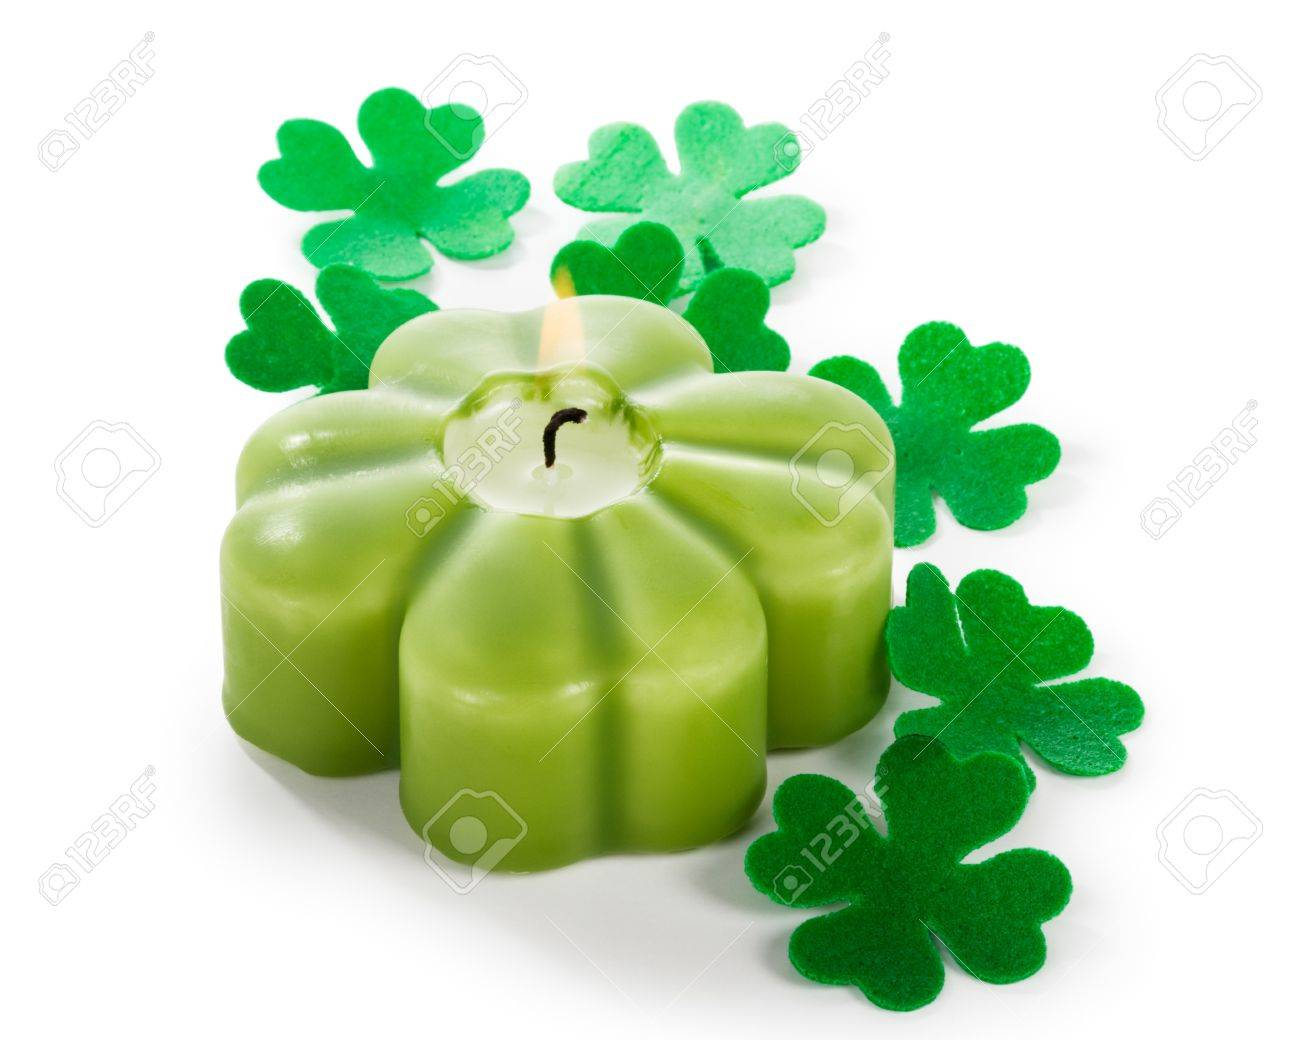 Shamrock burning candle for Patricks Day clipping path included Stock Photo - 17077471